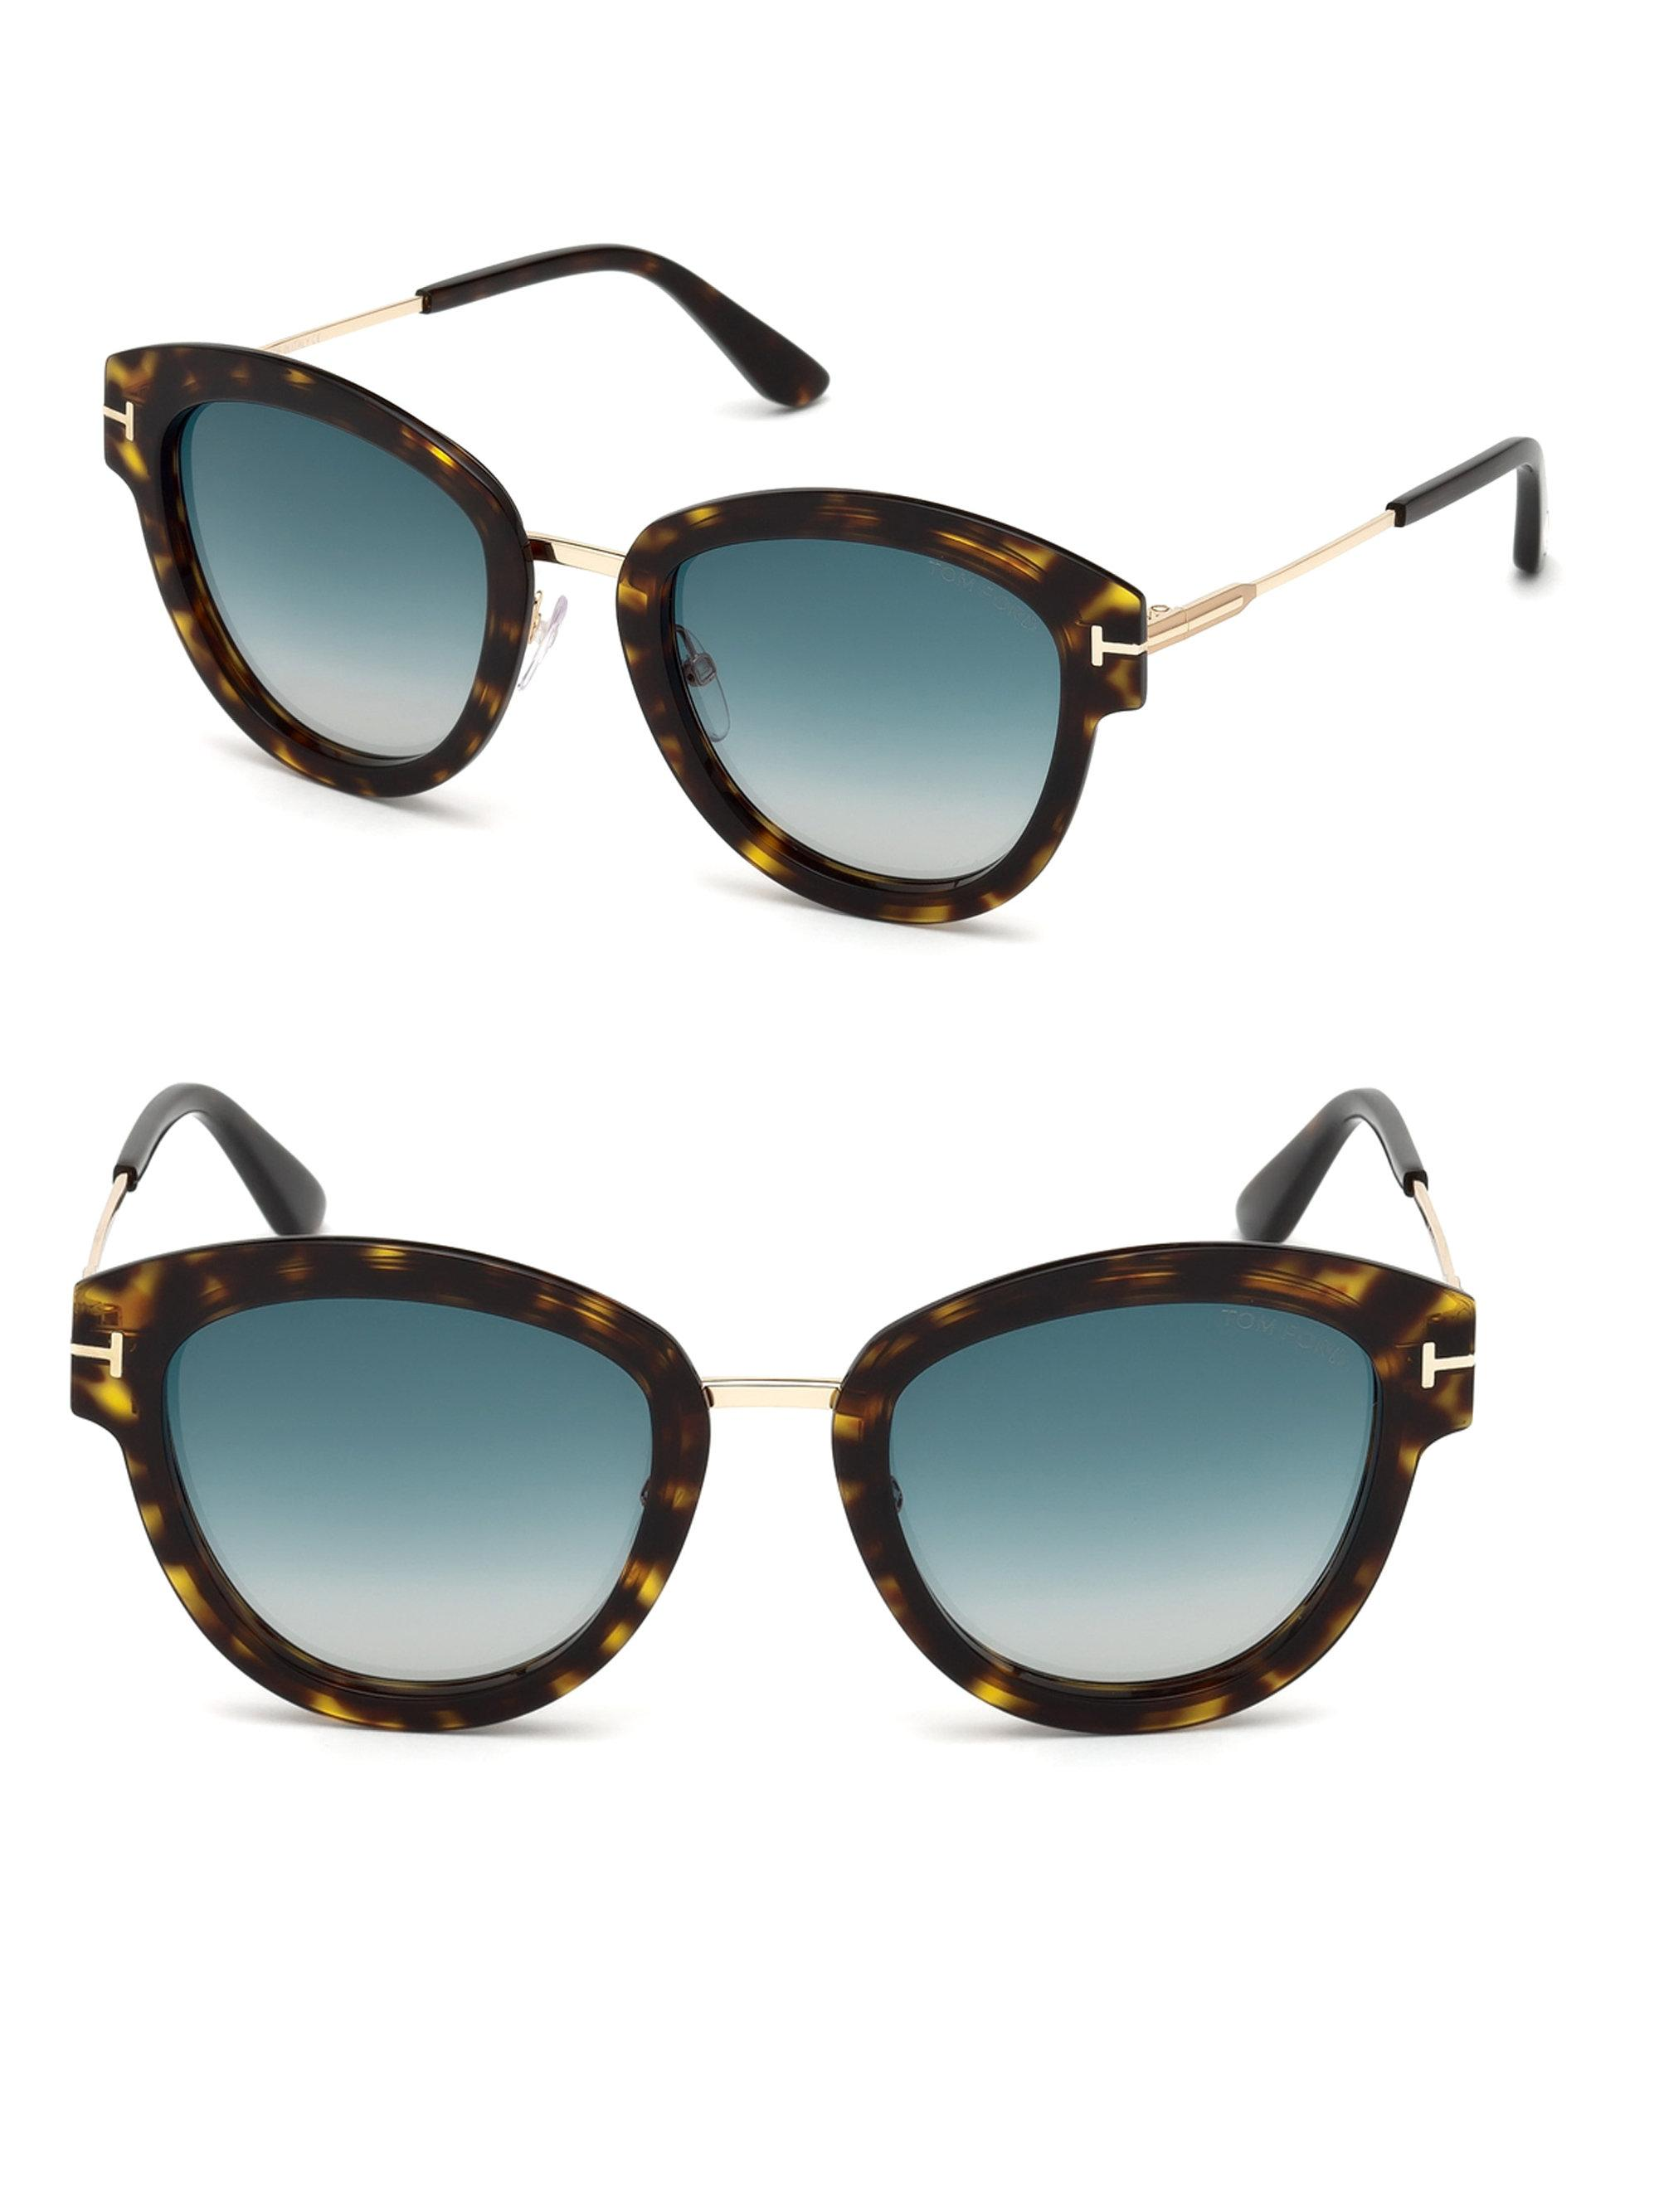 ab93ffa231 Tom Ford. Women s Mia Cat Eye Sunglasses